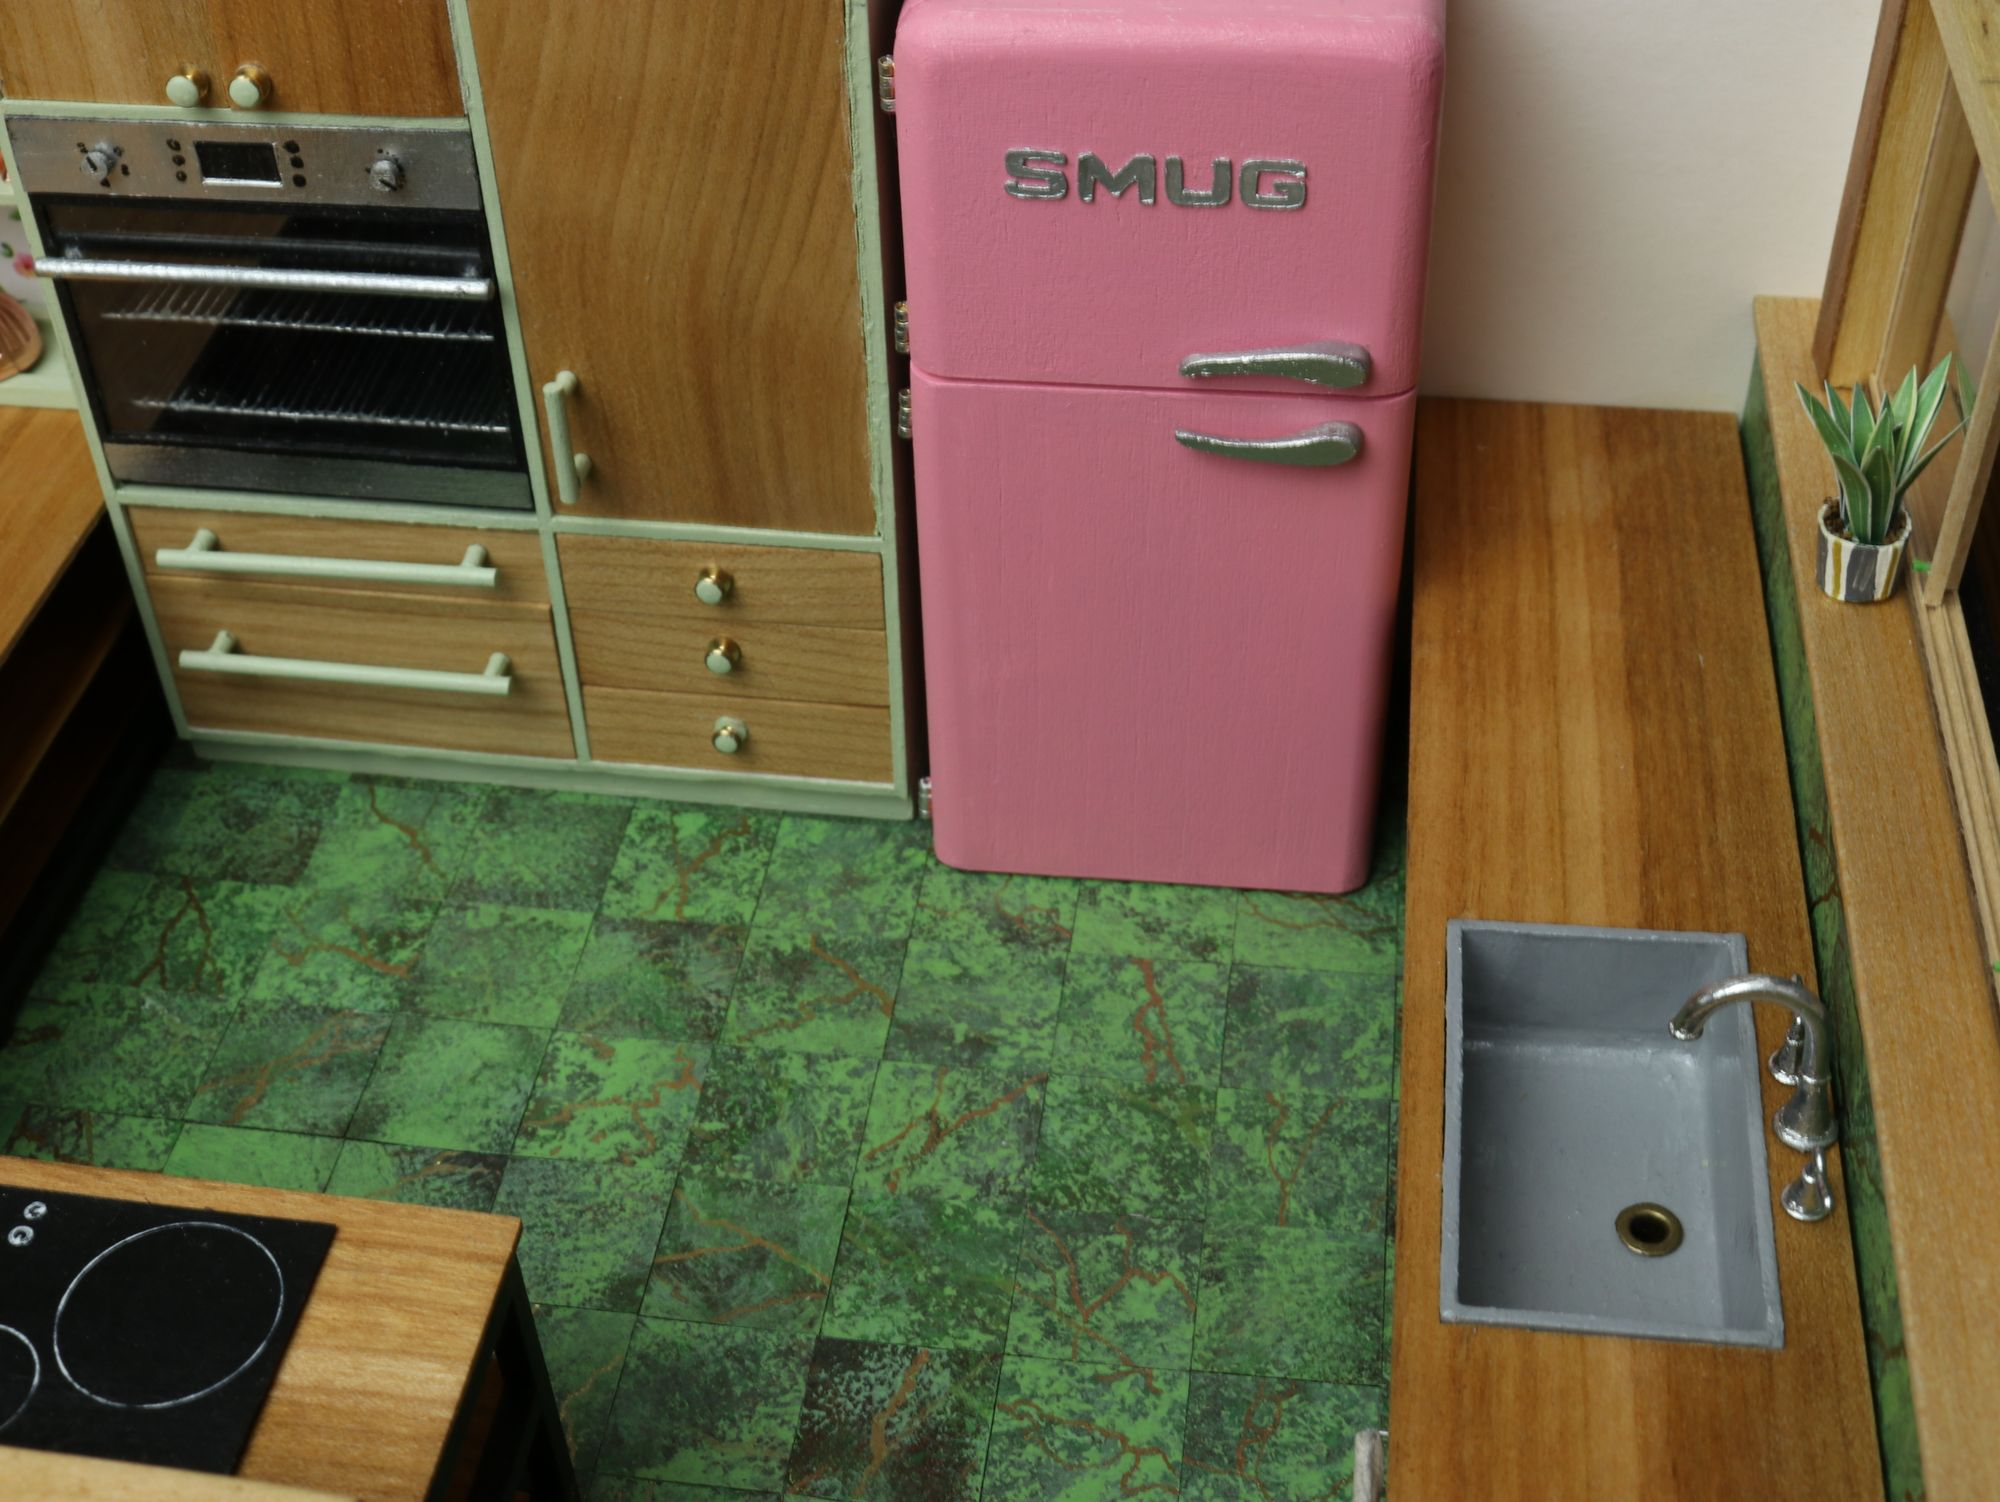 The fridge is a 1/16 replica of an actual fridge, well almost.